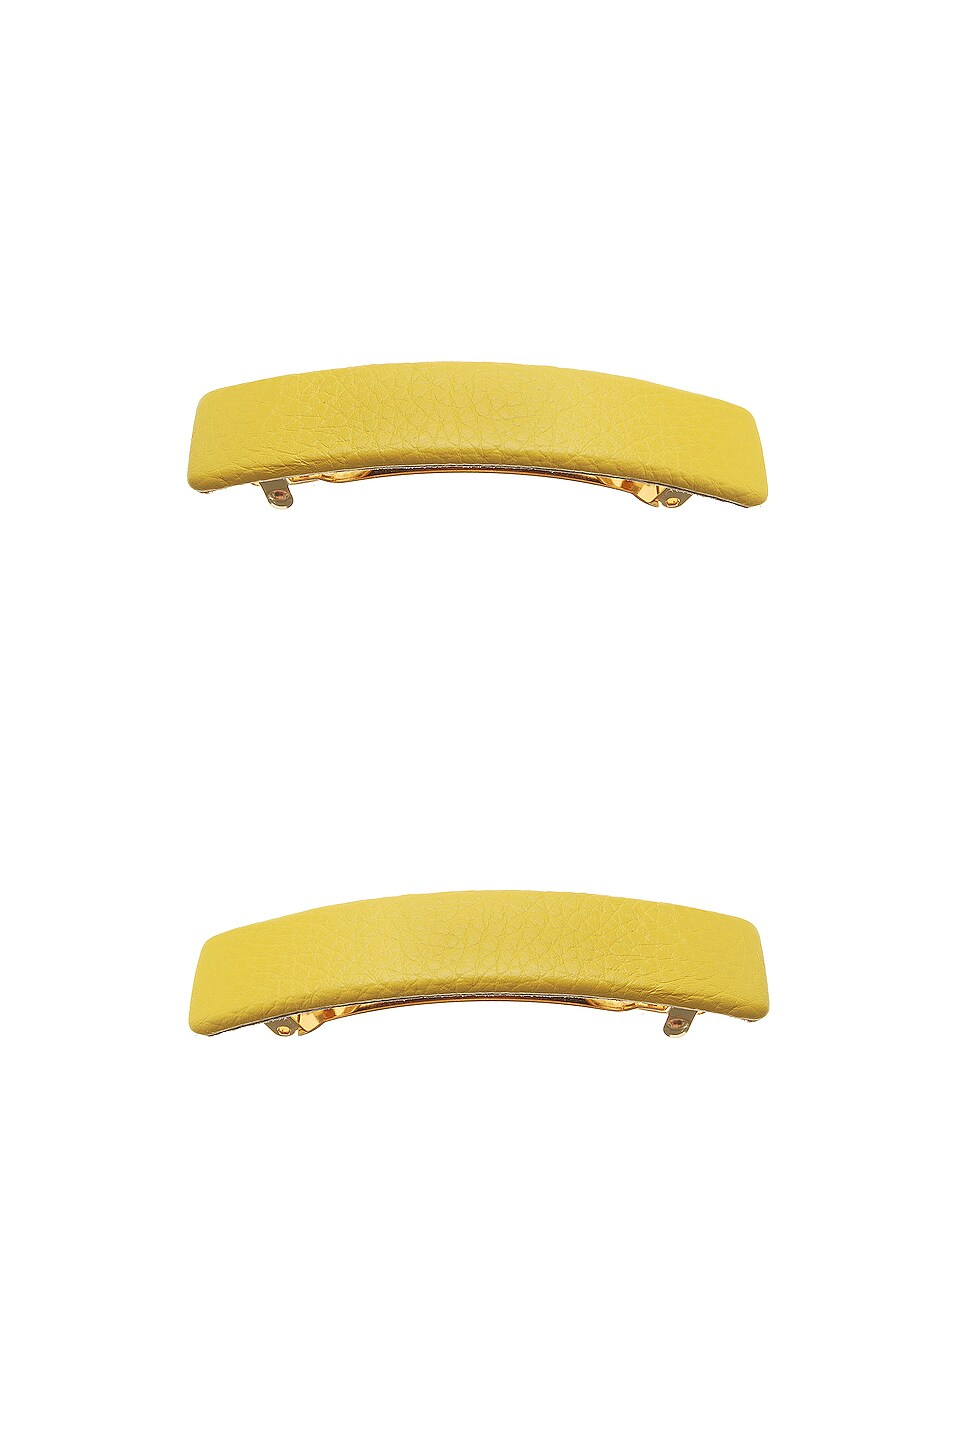 L. Erickson USA Genuine Leather Rectangle Barrette in South Beach Yellow